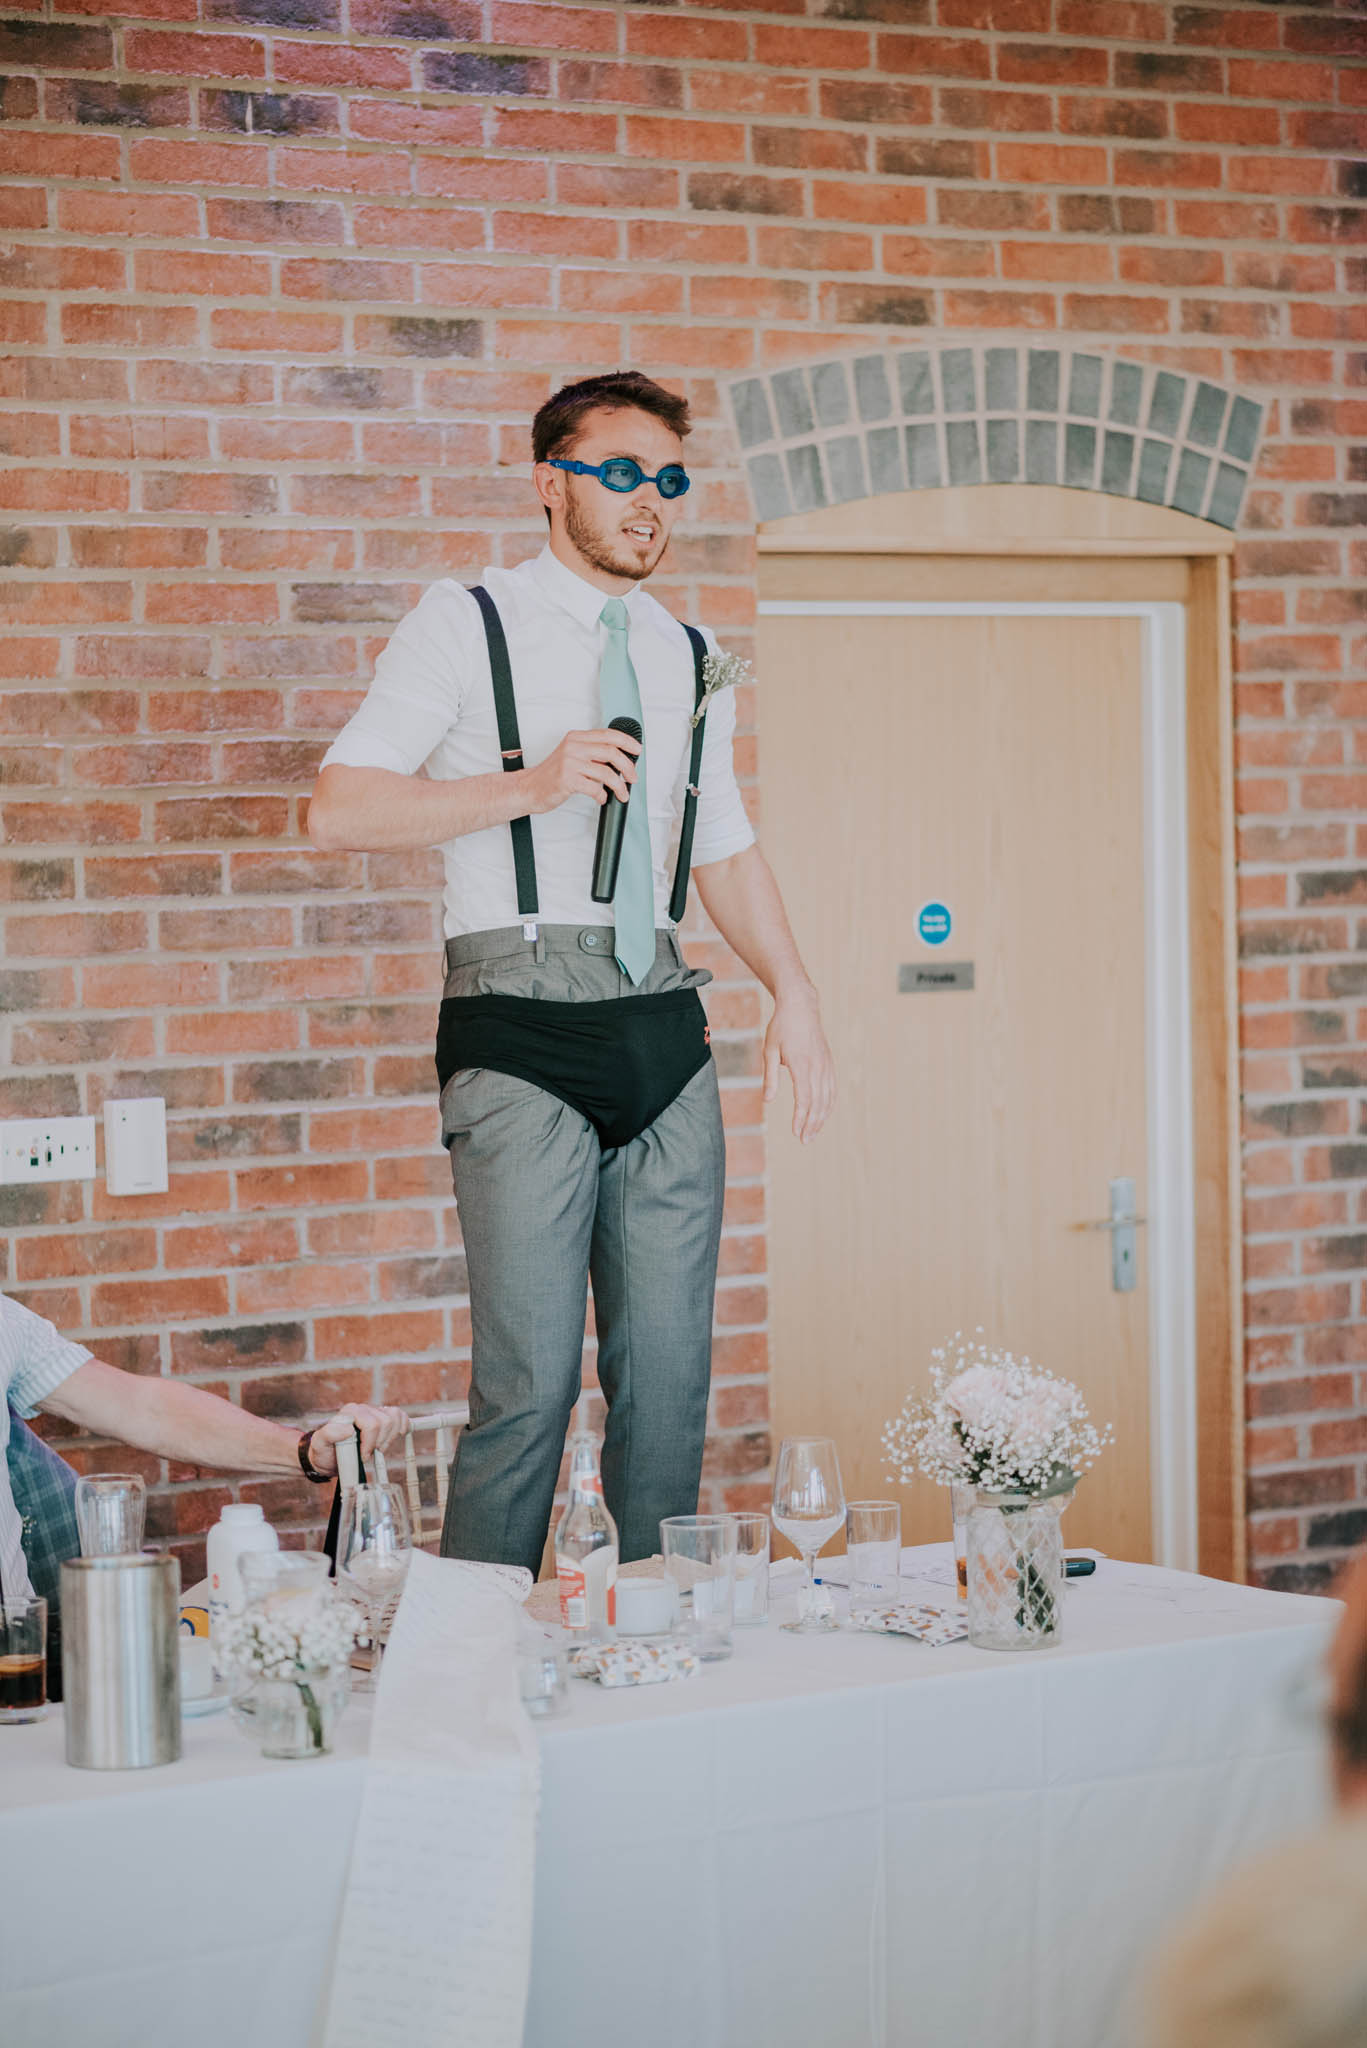 best-man-speech-wedding-blog-scott-stockwell-photography-end-2017.jpg